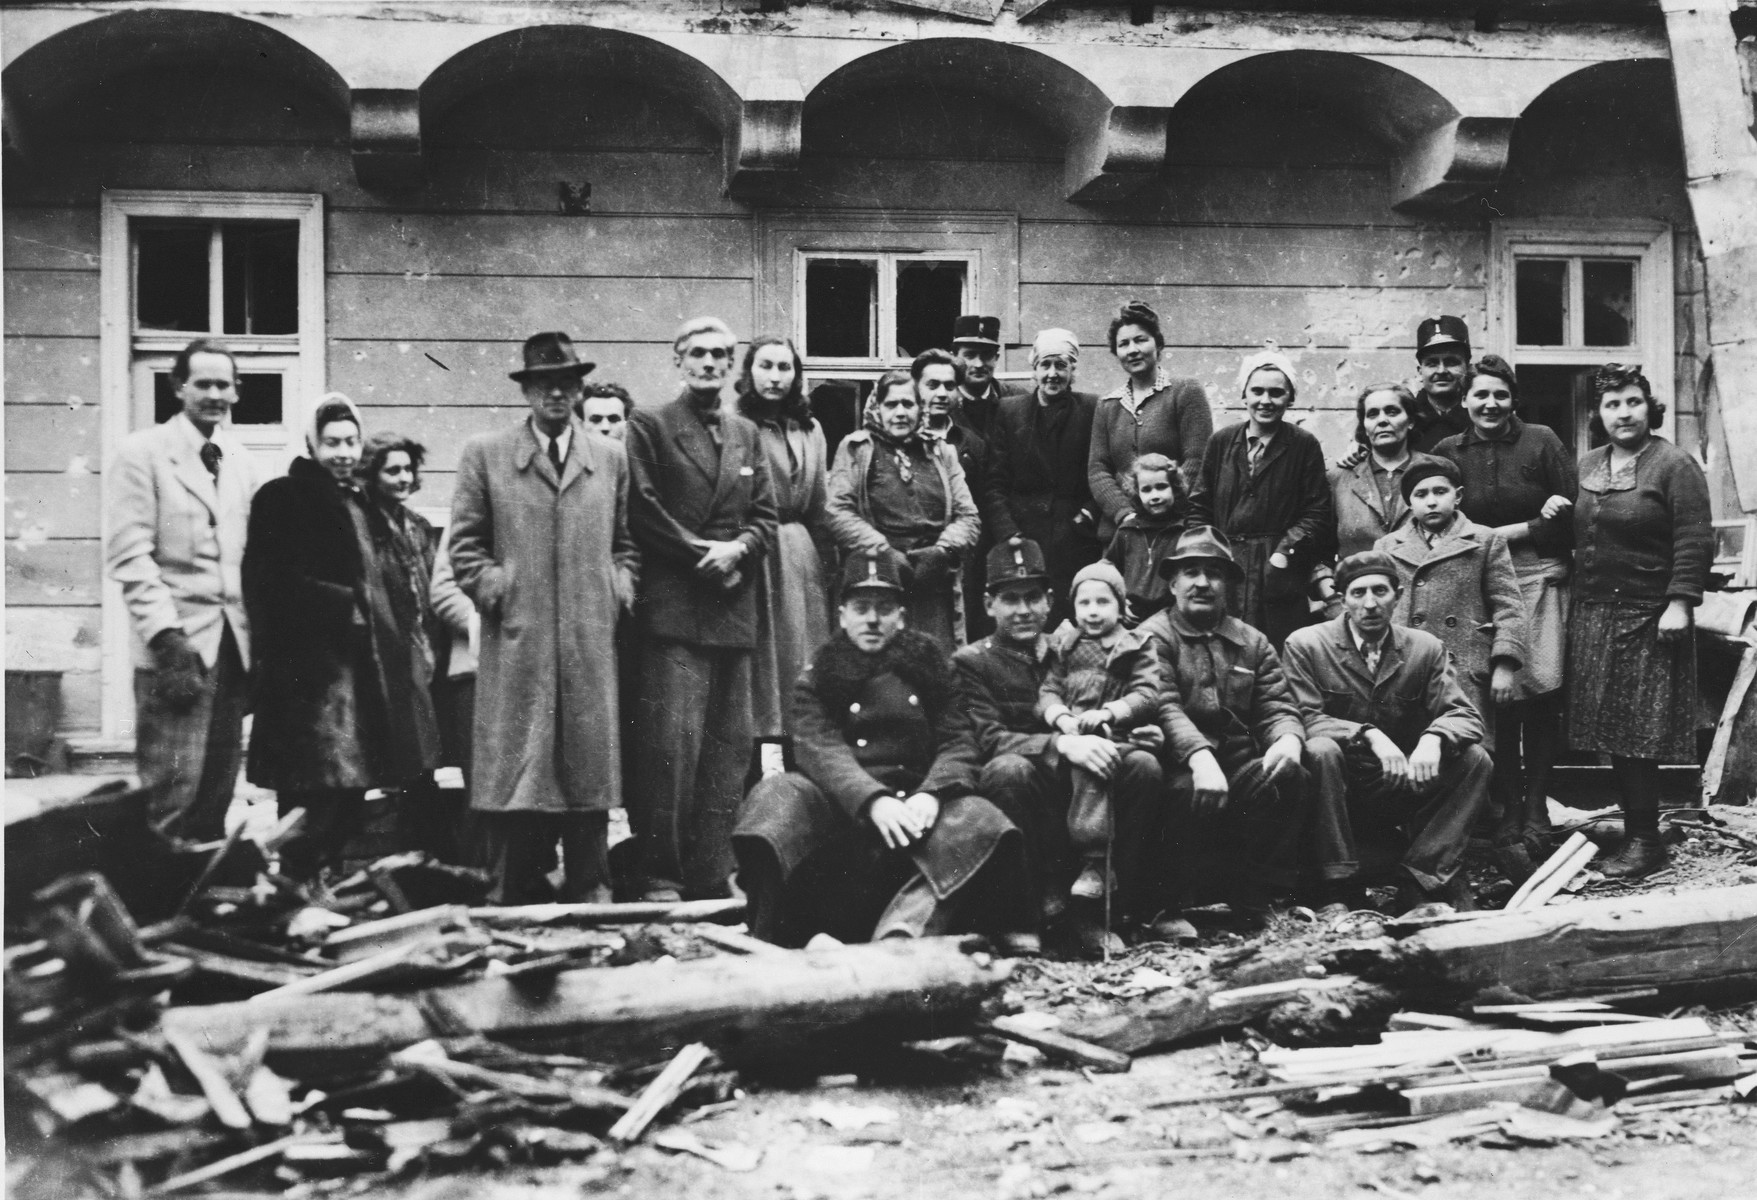 Charles (Carl) and Gertrud Lutz pose with police and former employees among the ruins of the British legation in Budapest after the liberation.  Among those pictured is Carl Lutz, his first wife, Gertrud, his future wife, Magda, and his future step-daughter, Agnes.